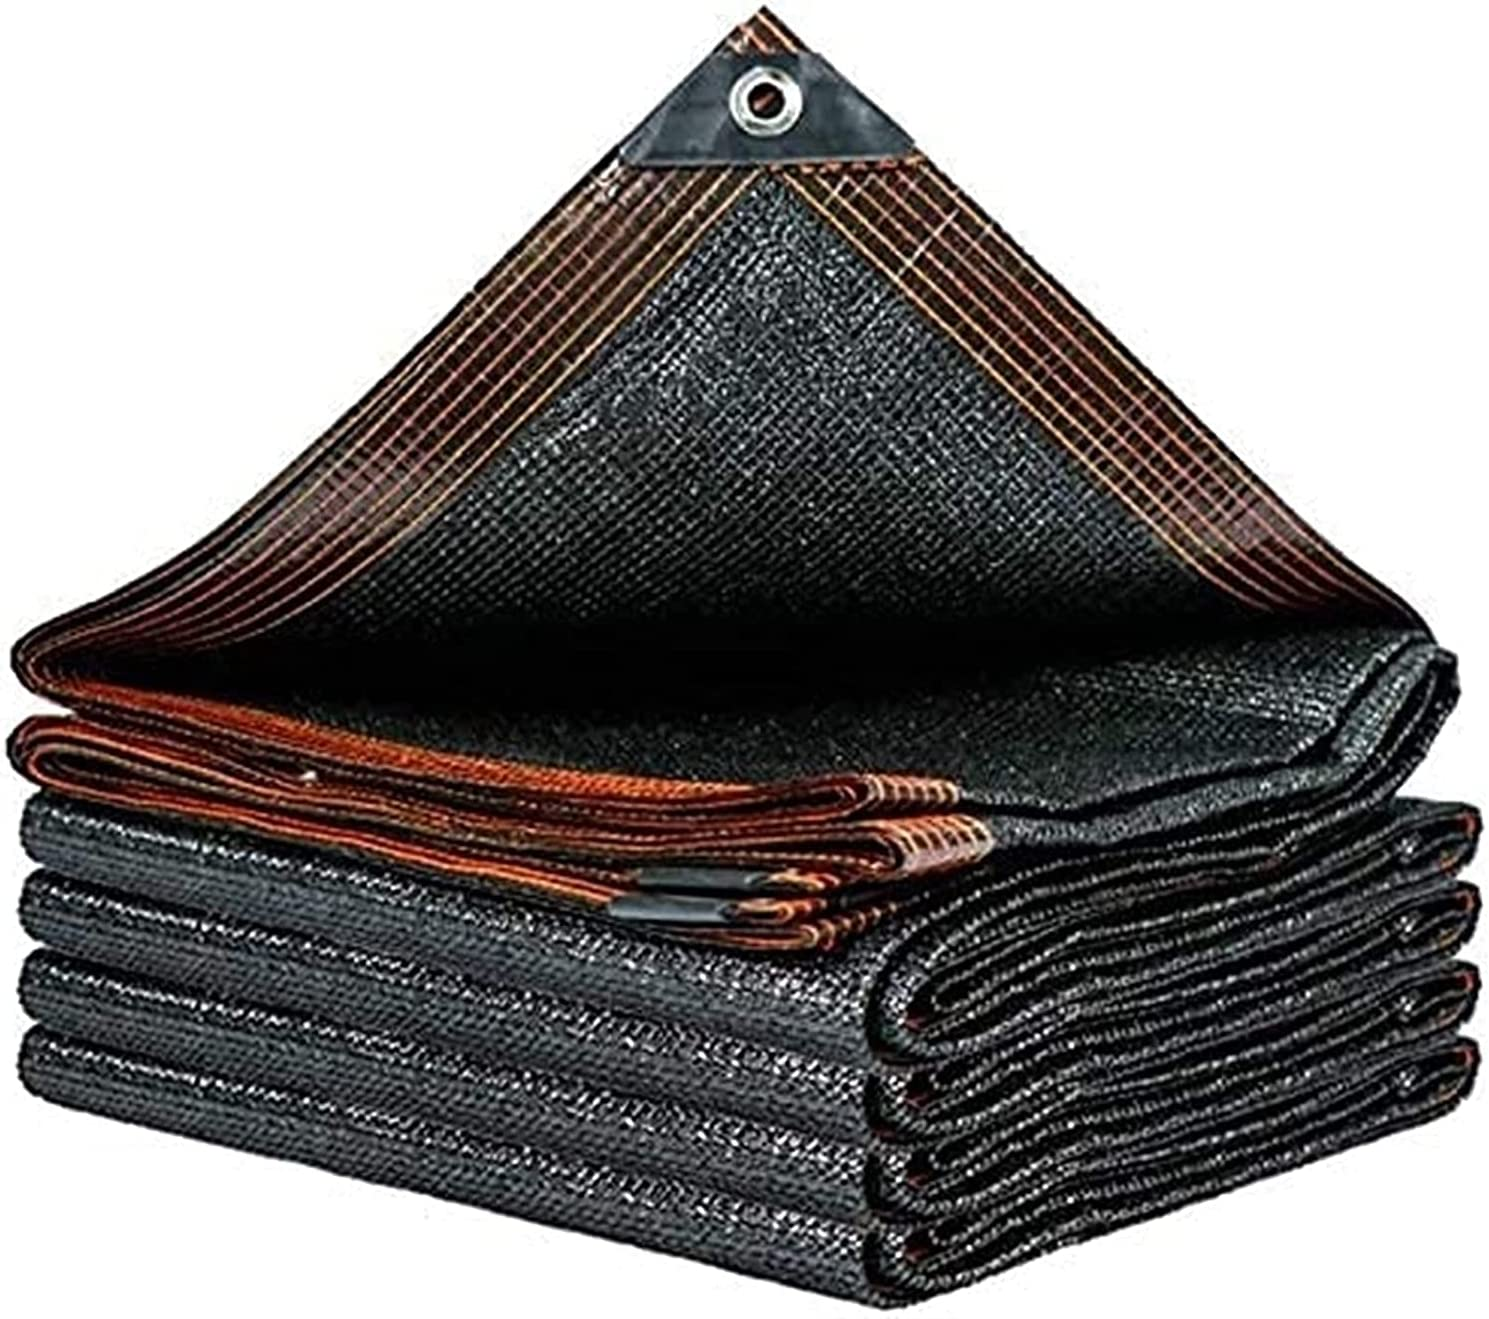 SDFOOWESD shade cloth Wholesale for garden Free Shipping New plants h